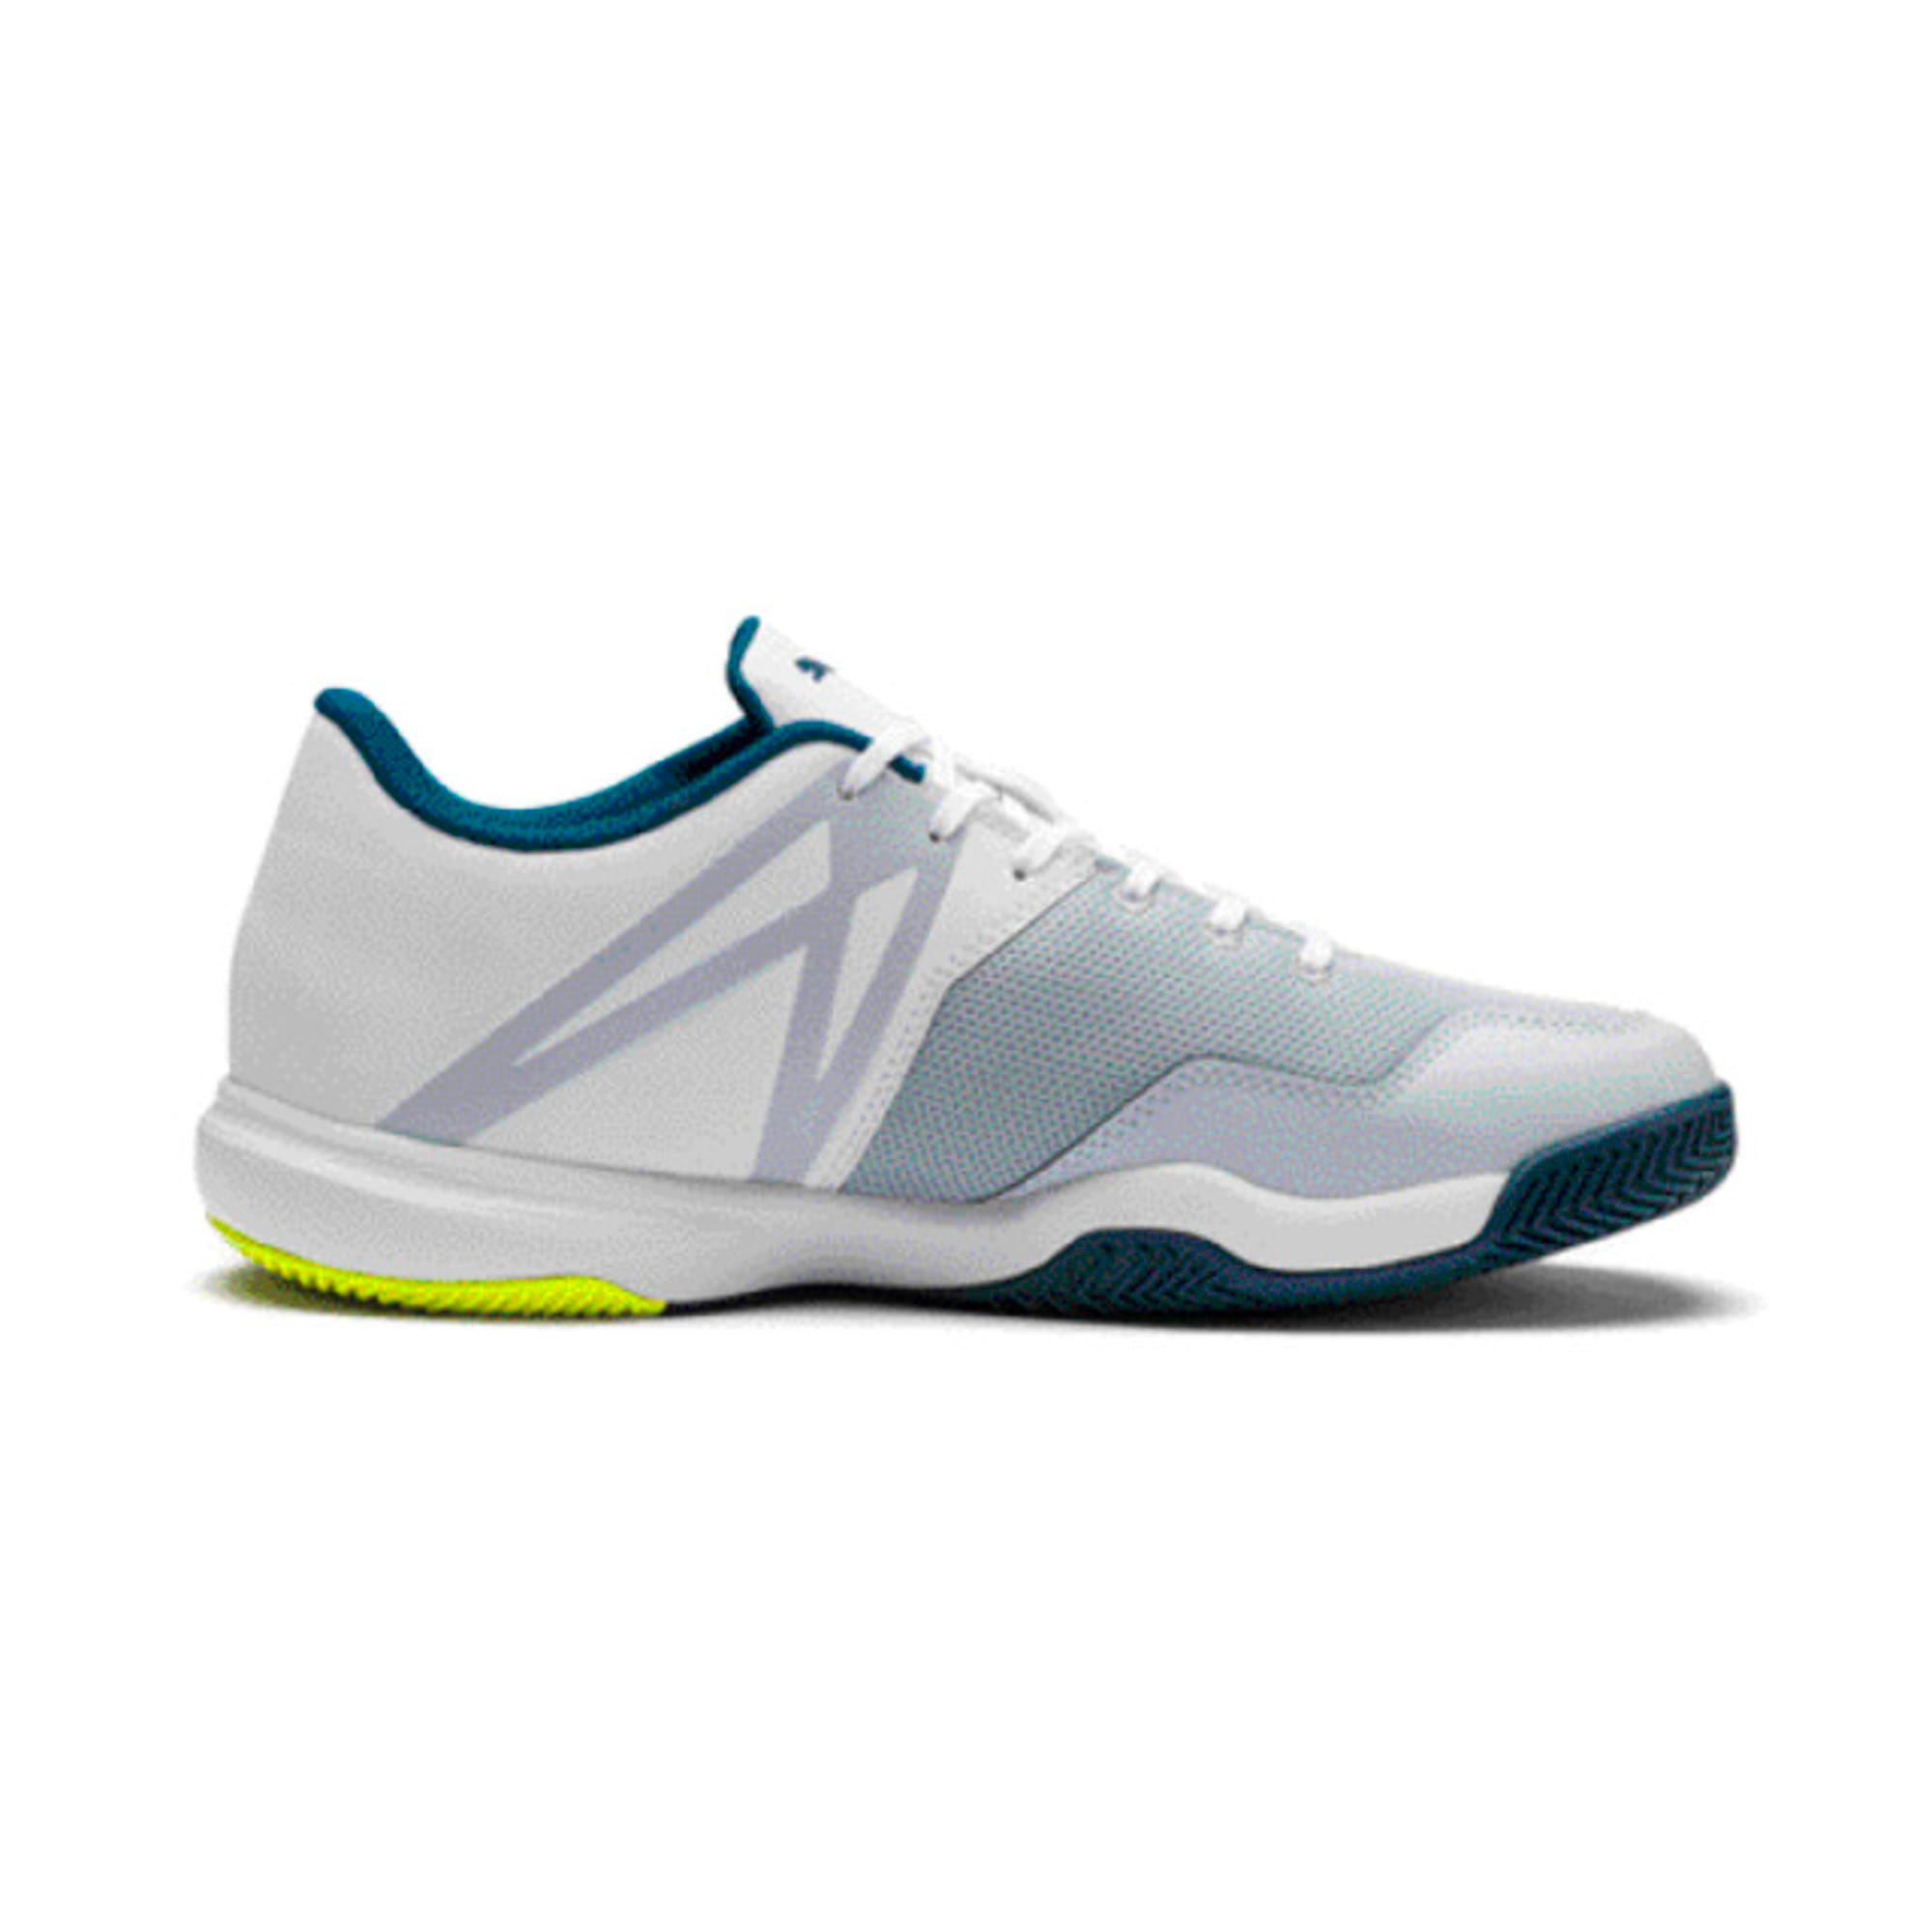 Thumbnail 5 of Explode XT 3 Men's Indoor Sports Performance Trainers, White-Grey-Yellow-Gibraltar, medium-IND